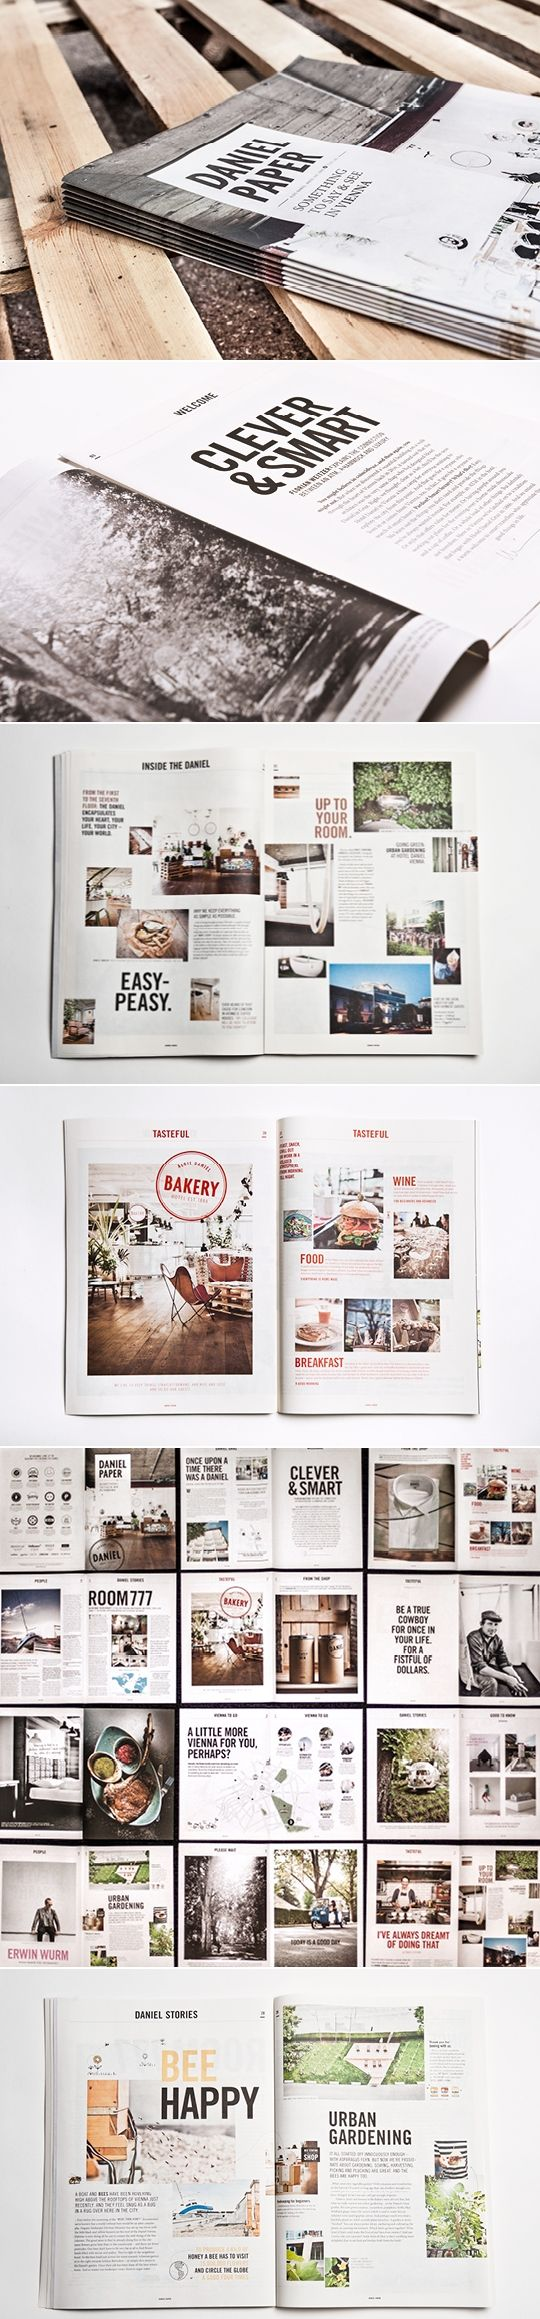 print design / editorial | Daniel Paper #layout #design #magazine